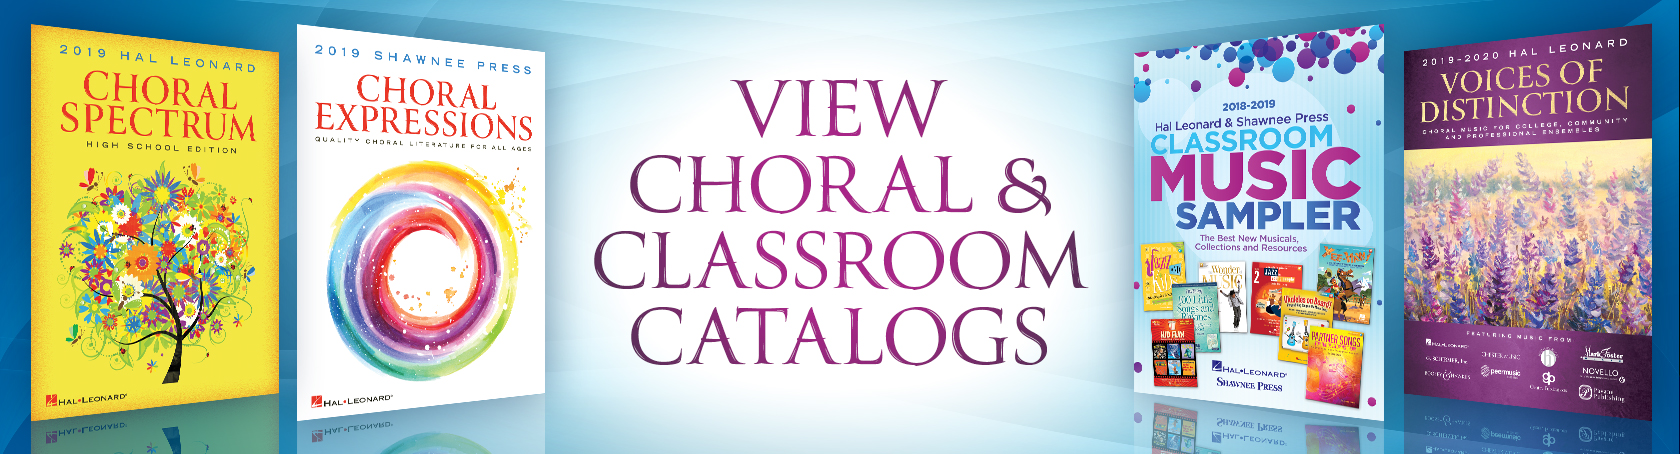 Choral Promos - View Choral & Classroom Promotions